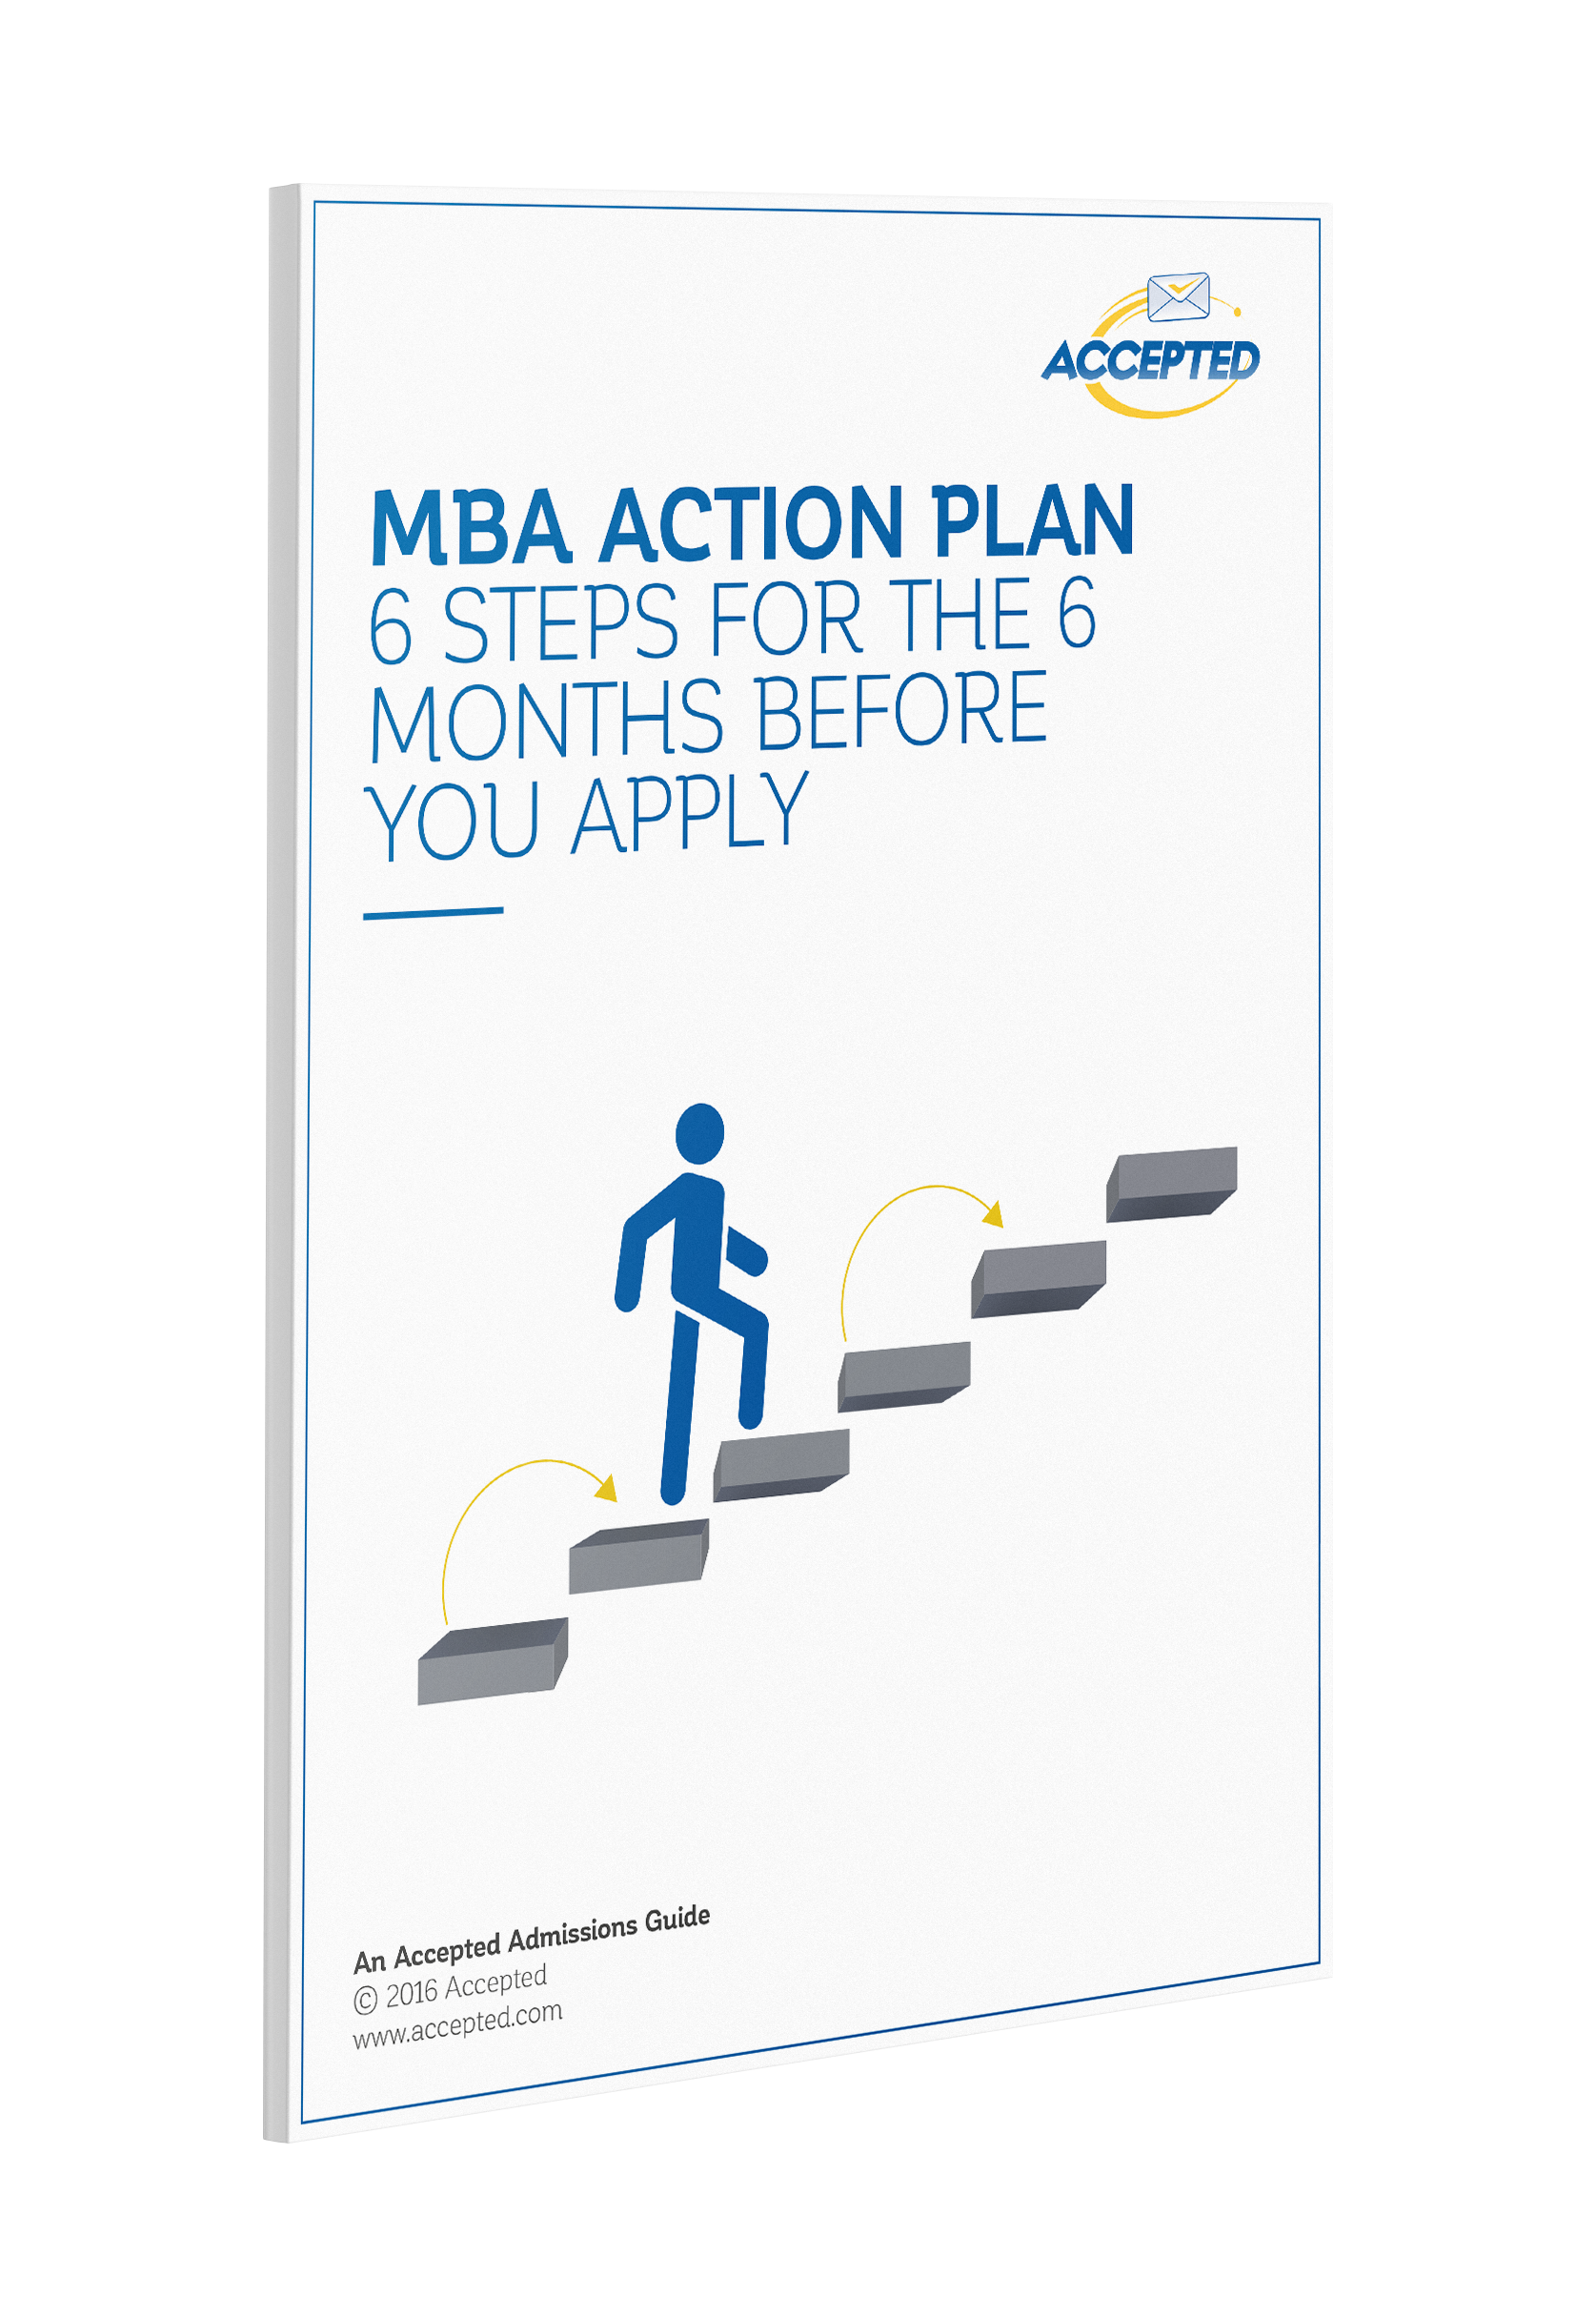 MBA_Action_Plan_3D.png